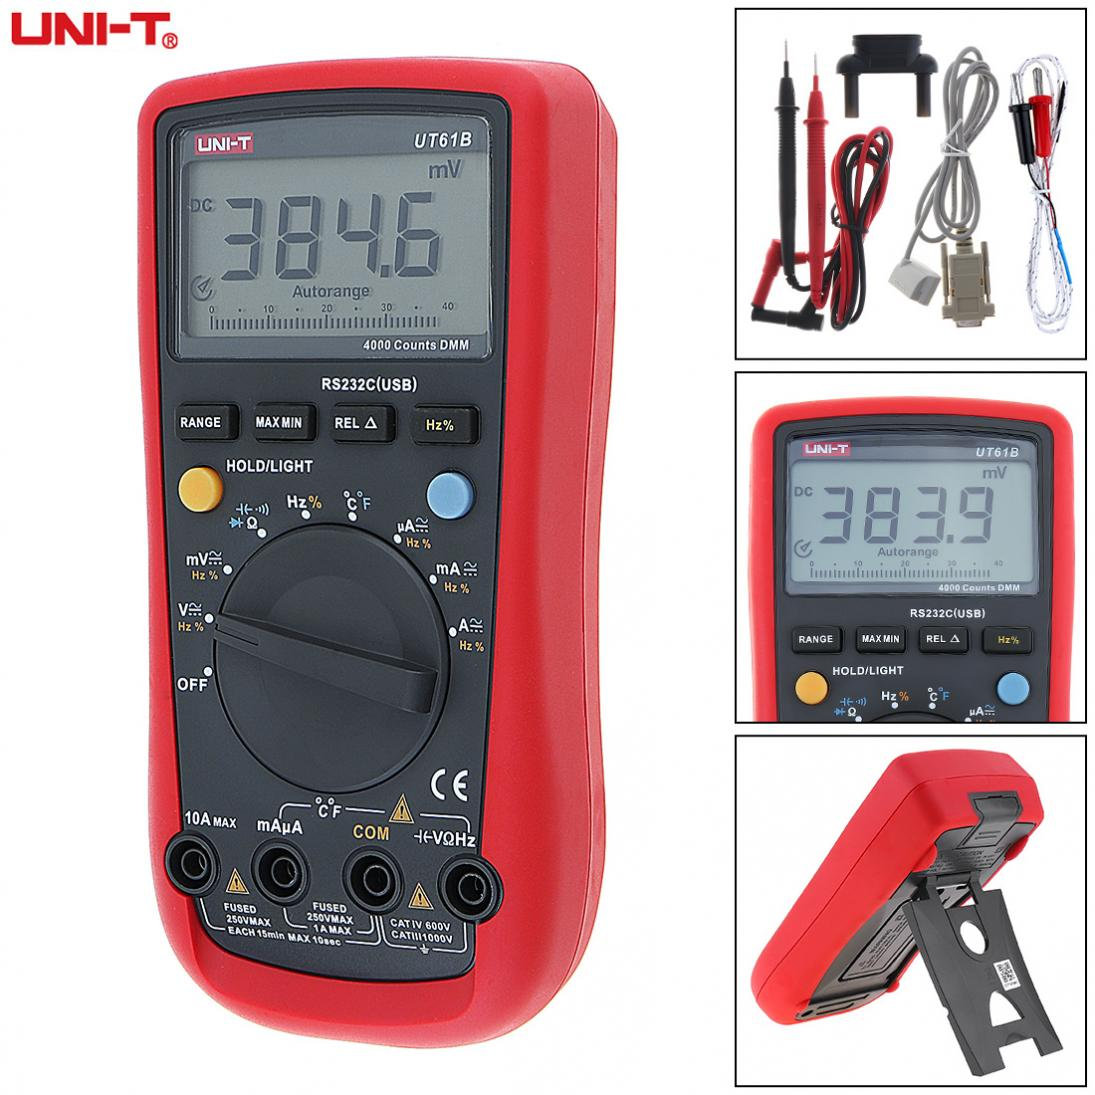 UNI-T New UT61B 3999 Counts LCD Display Precision Digital Multimeter with RS232C / USB Standard Interface Line uni t ut90c ut 90c low price best multimeter digital with lcd display